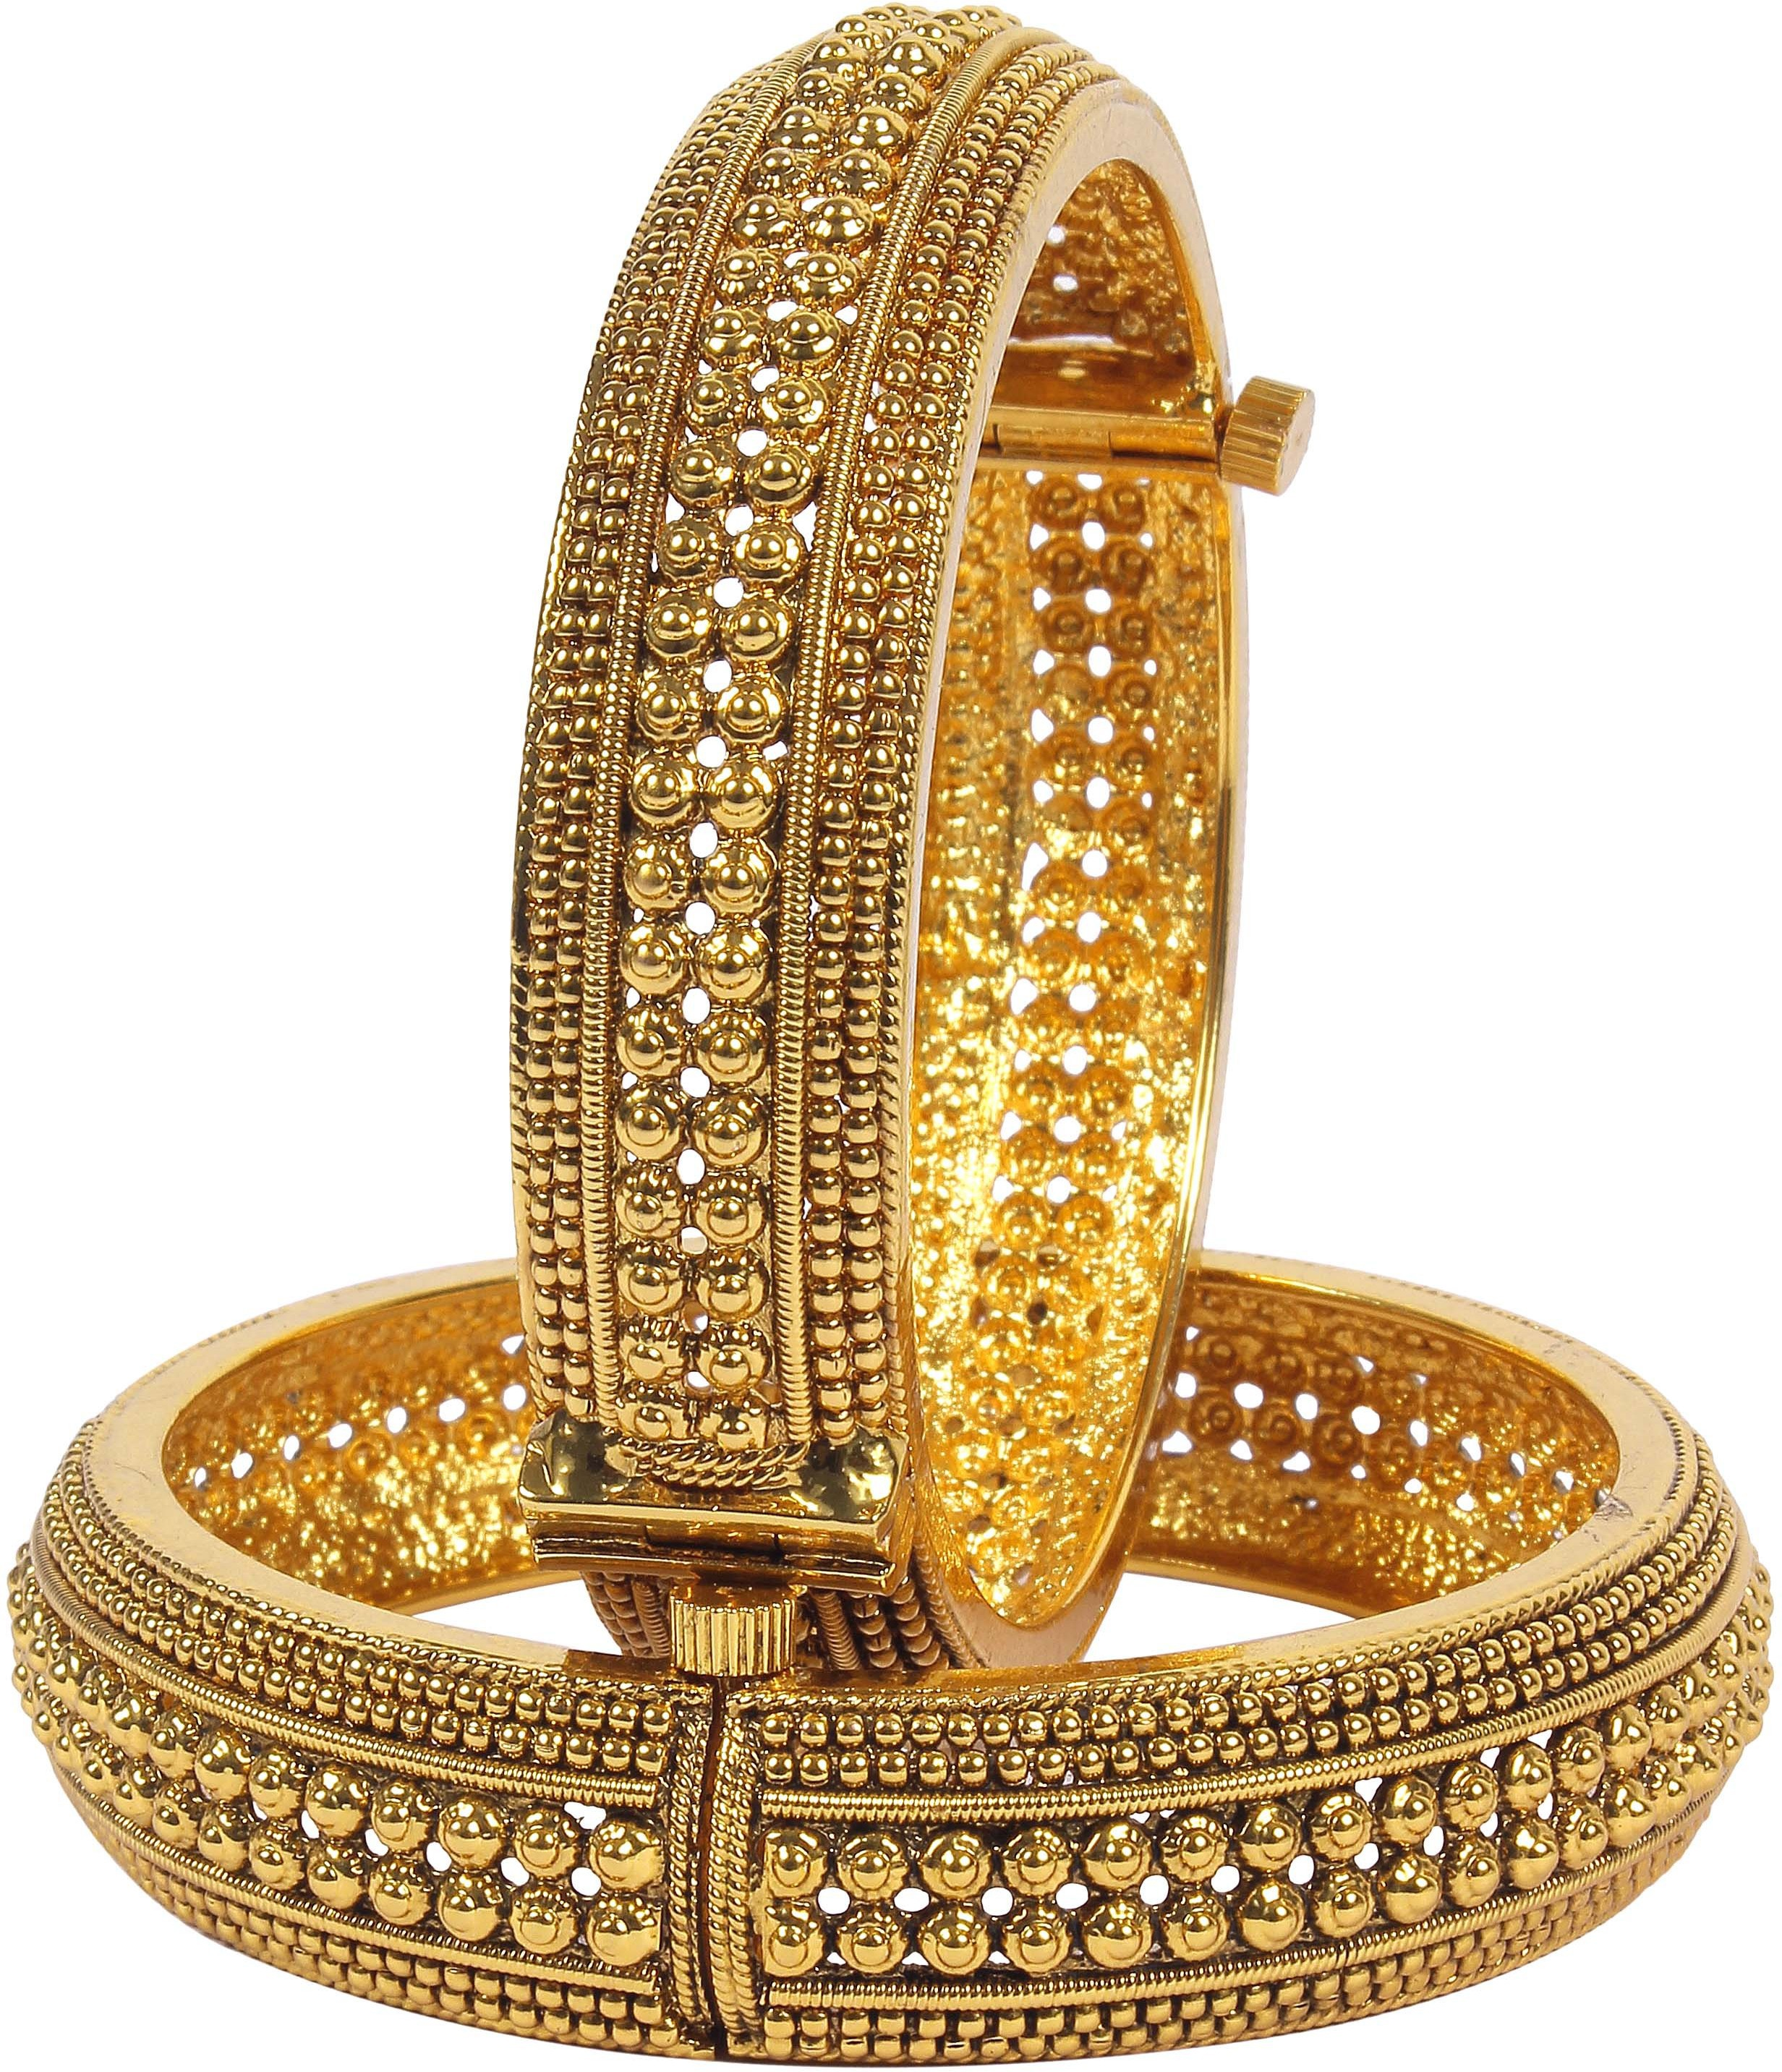 Deals - Delhi - Grab Now <br> Pendants, Lockets.<br> Category - jewellery<br> Business - Flipkart.com